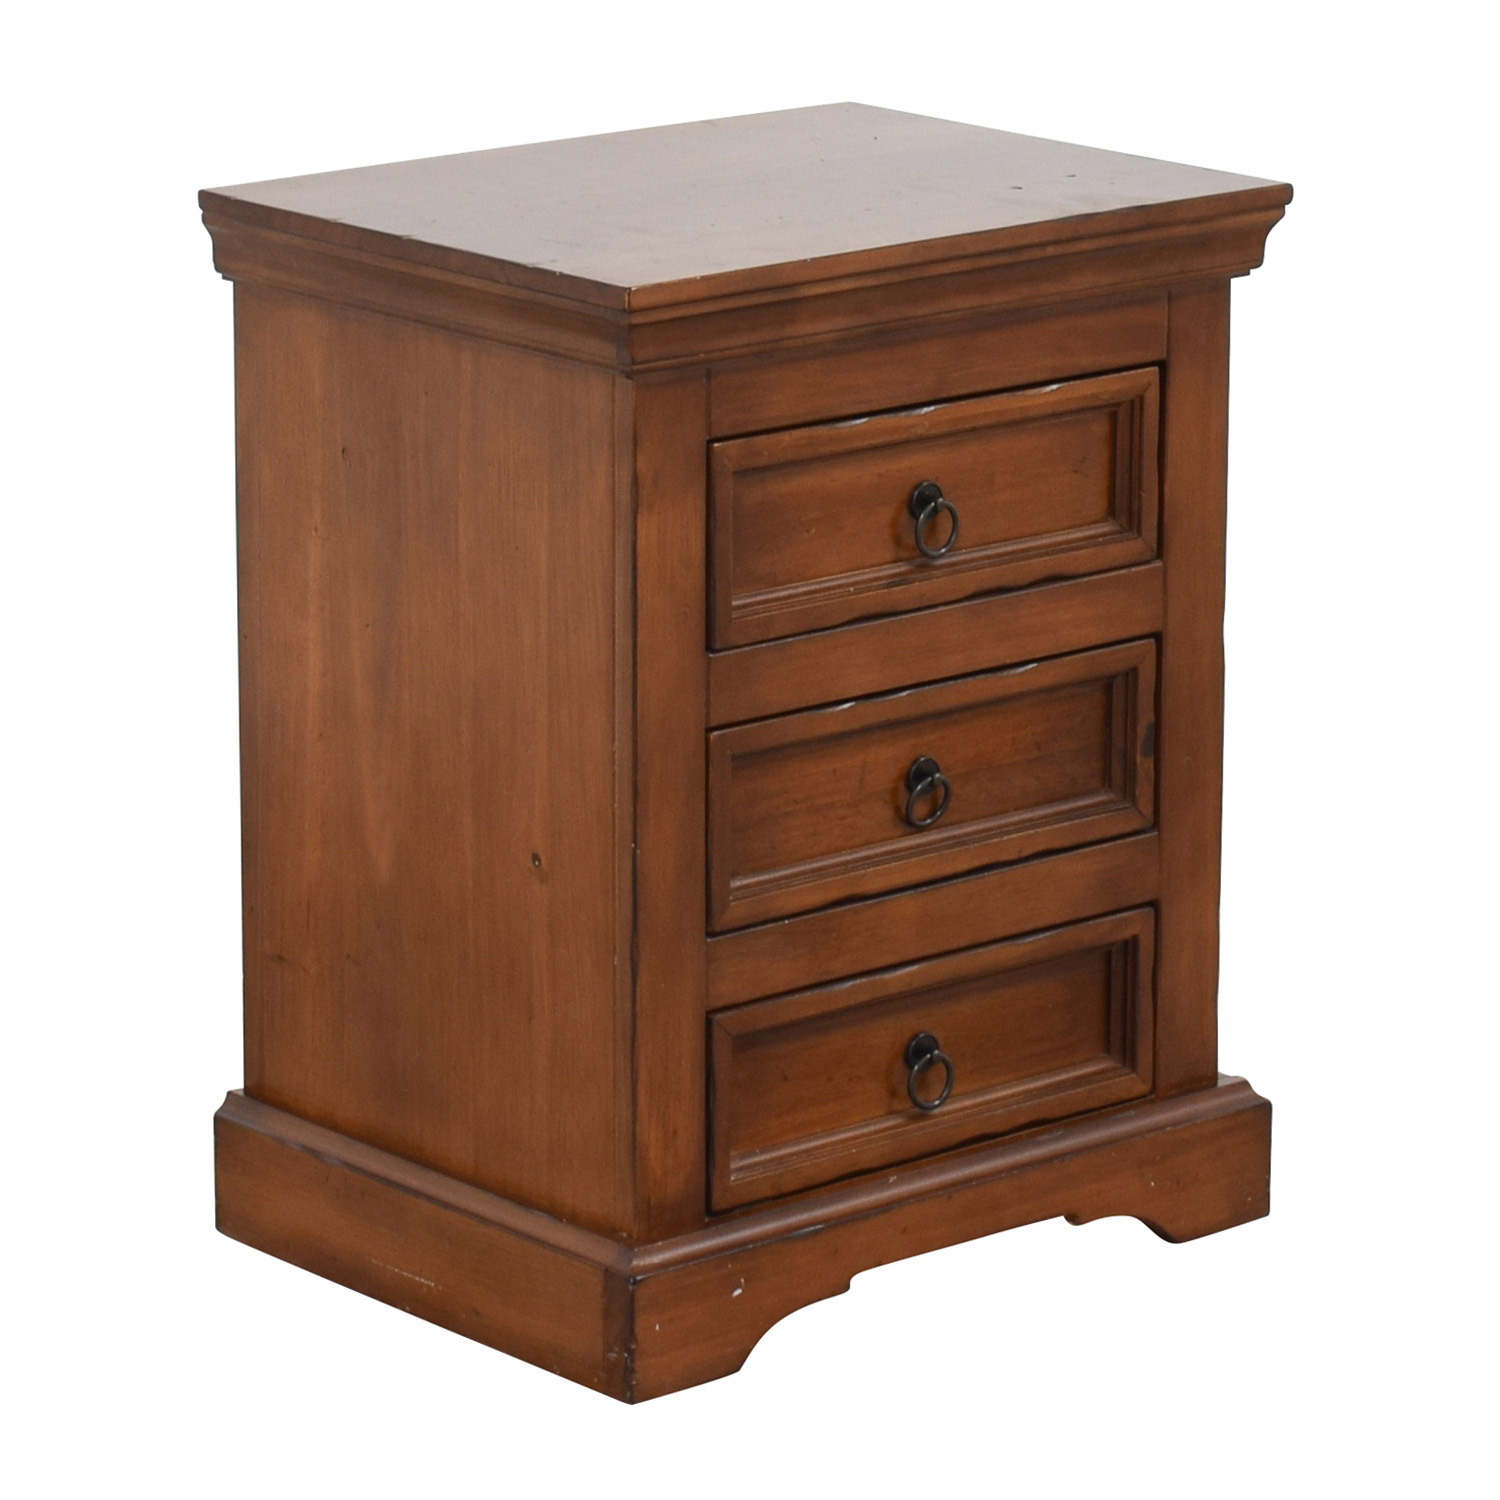 Pier 1 Imports Three-Drawer Nightstand / End Tables